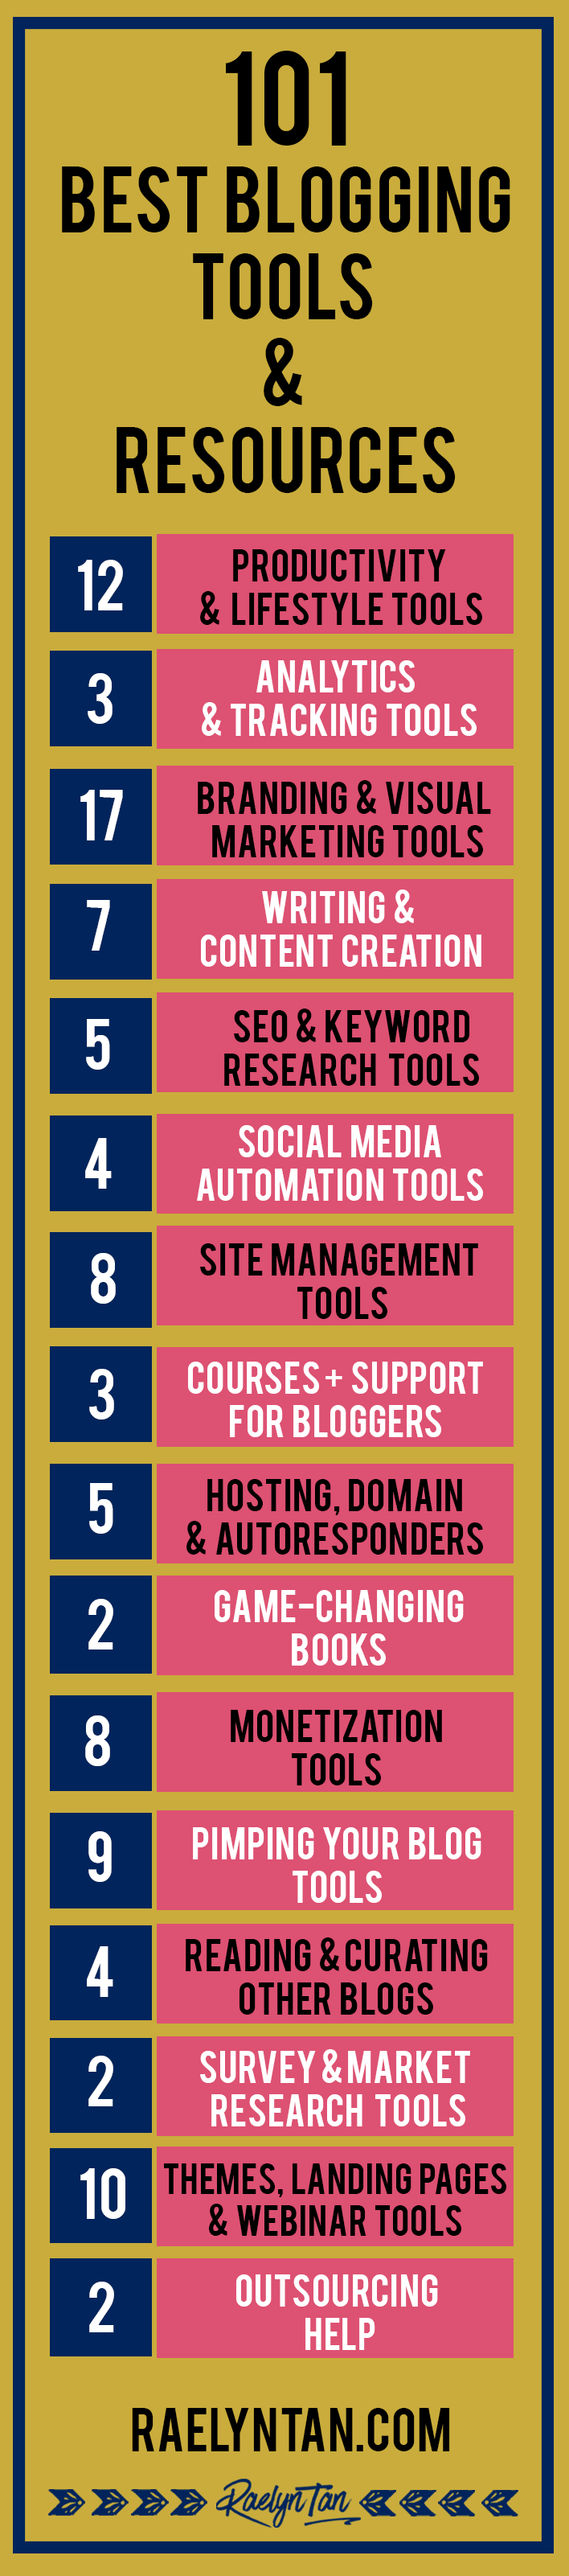 101 best blogging tools  u0026 resources  2019 edition